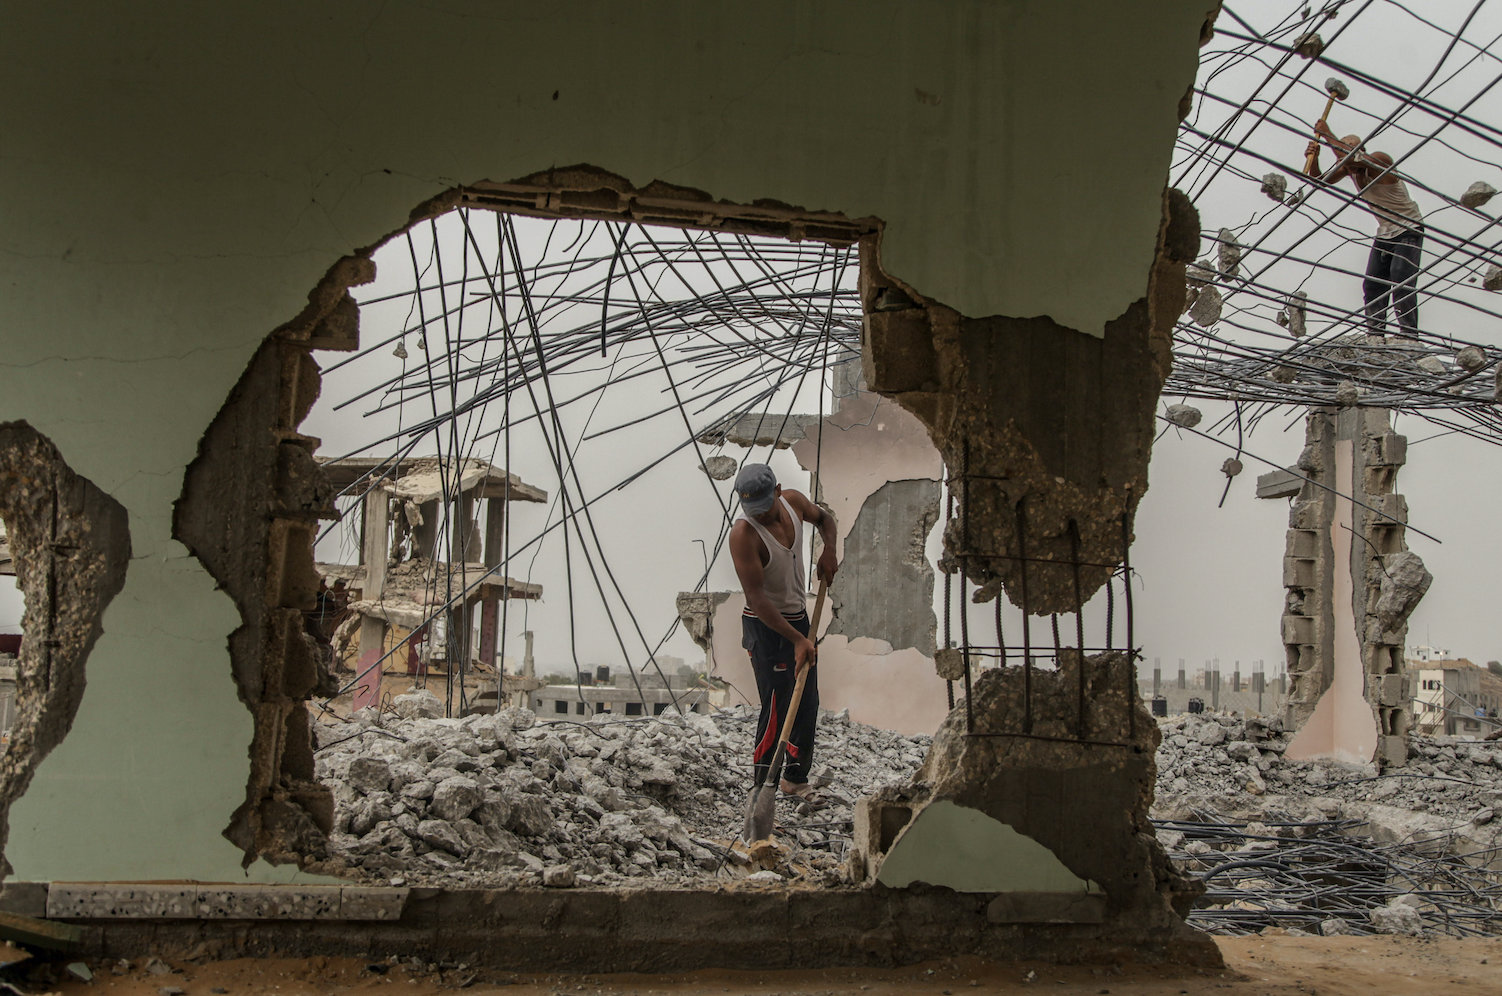 A Palestinian laborer works among the rubble of destroyed Palestinian houses damaged during Israel's 2014 war in Gaza, in the Shuja'iyya neighborhood of Gaza City, Gaza Strip, September 9, 2015. (Emad Nassar/Flash90)